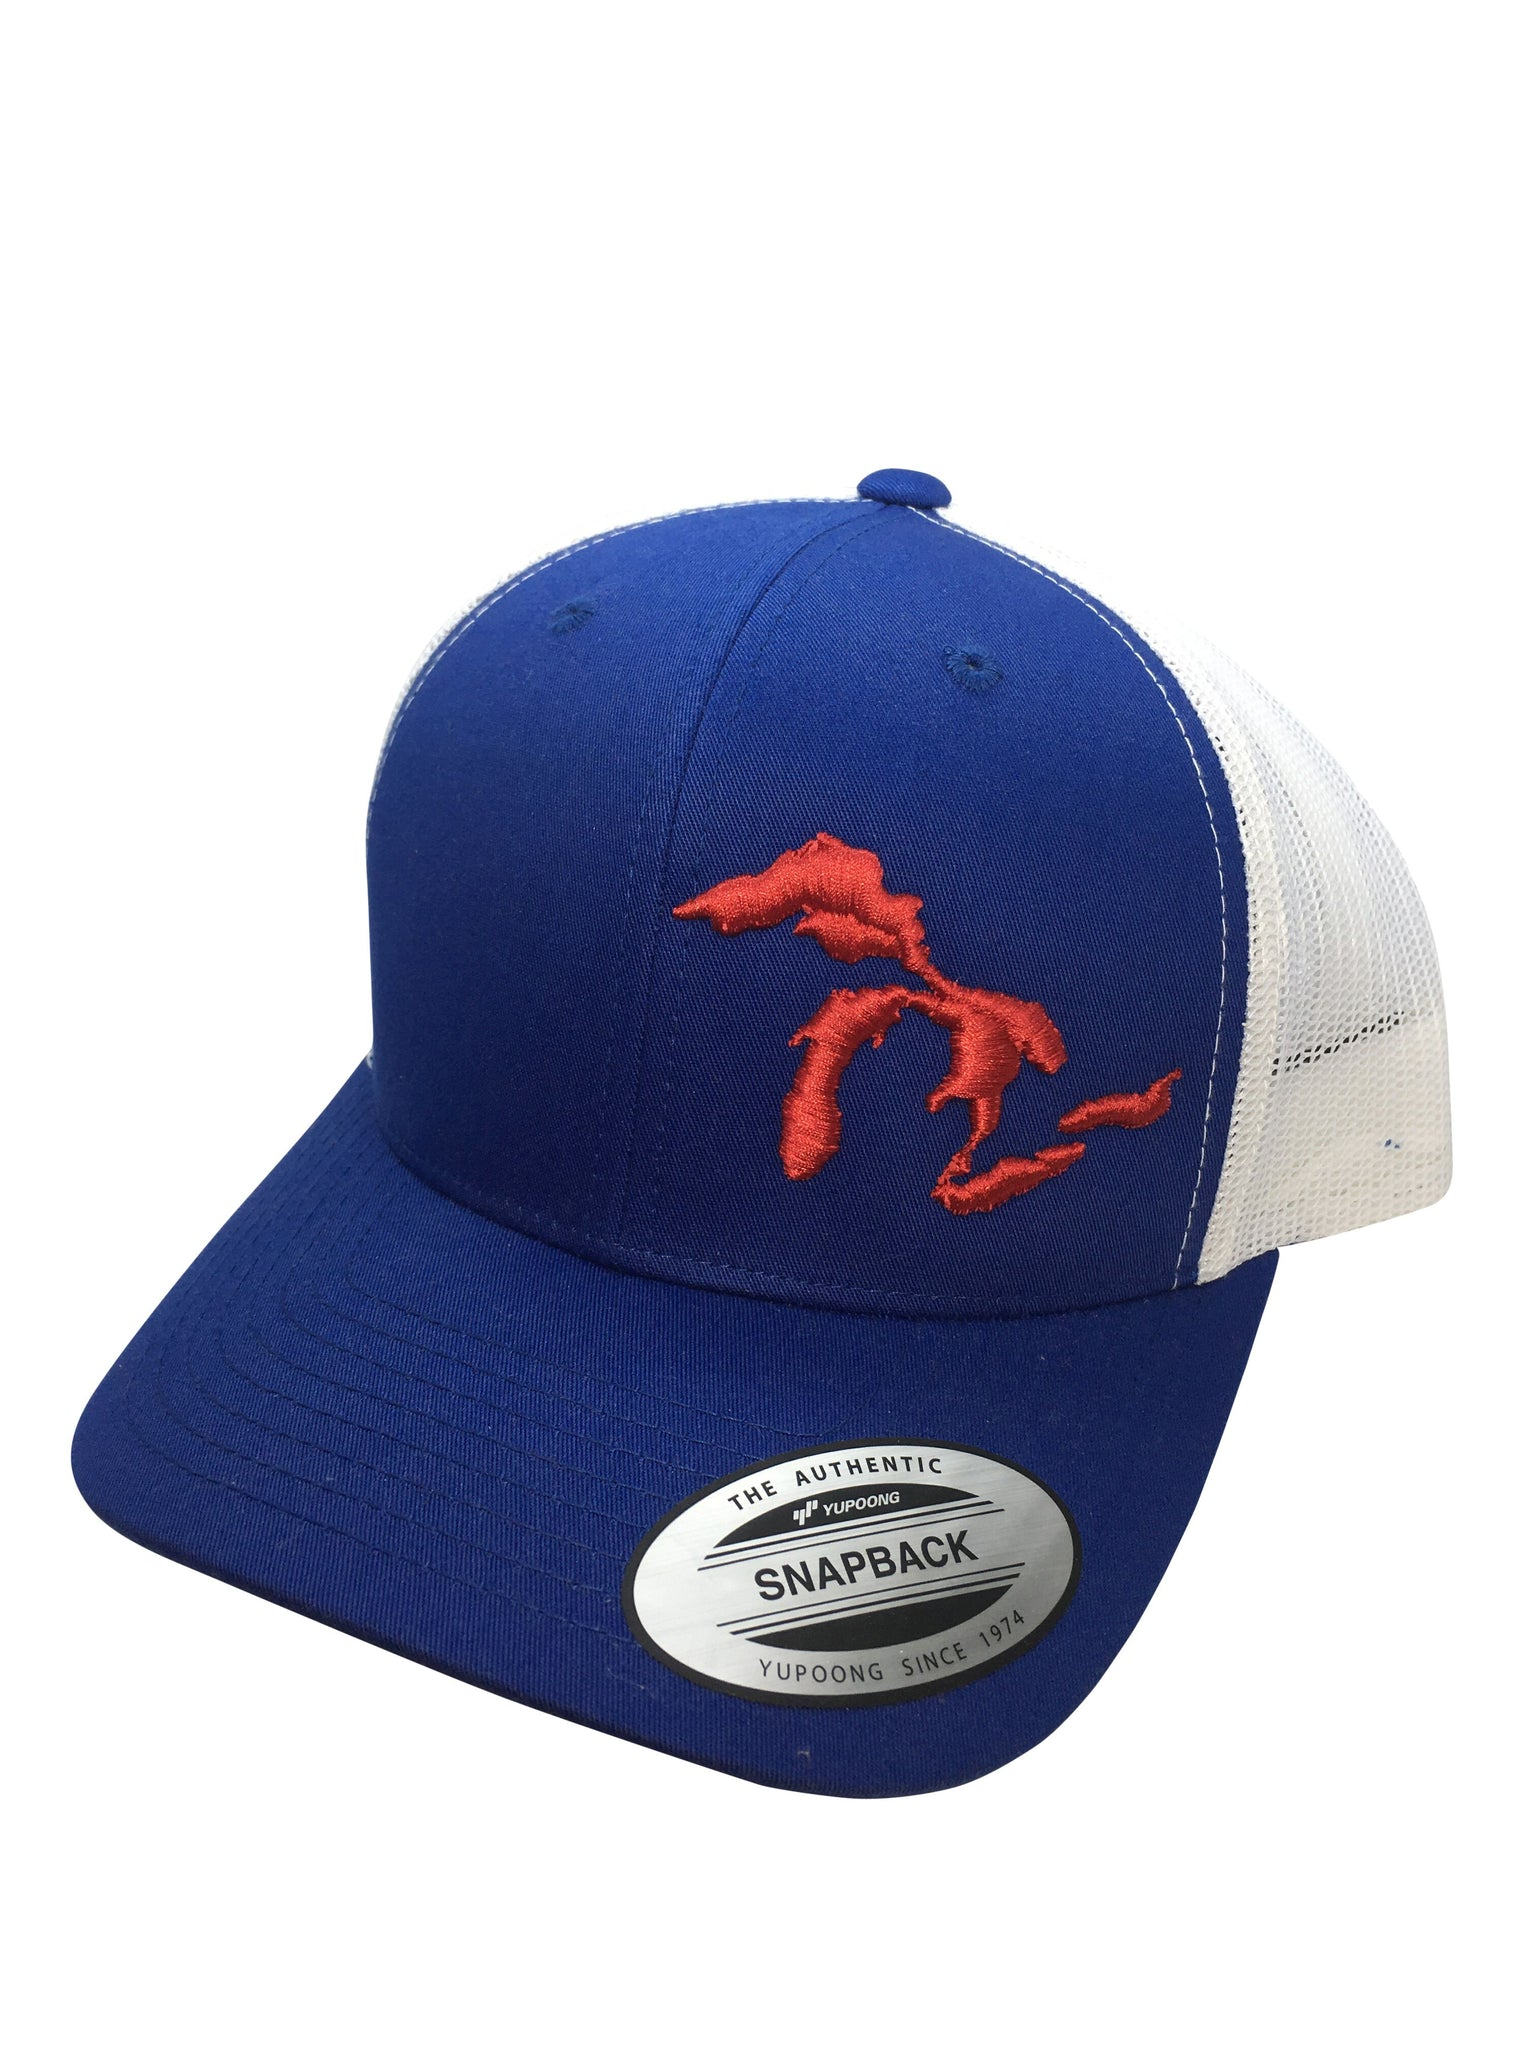 Great Lakes Trucker Hat - Red/White & Blue